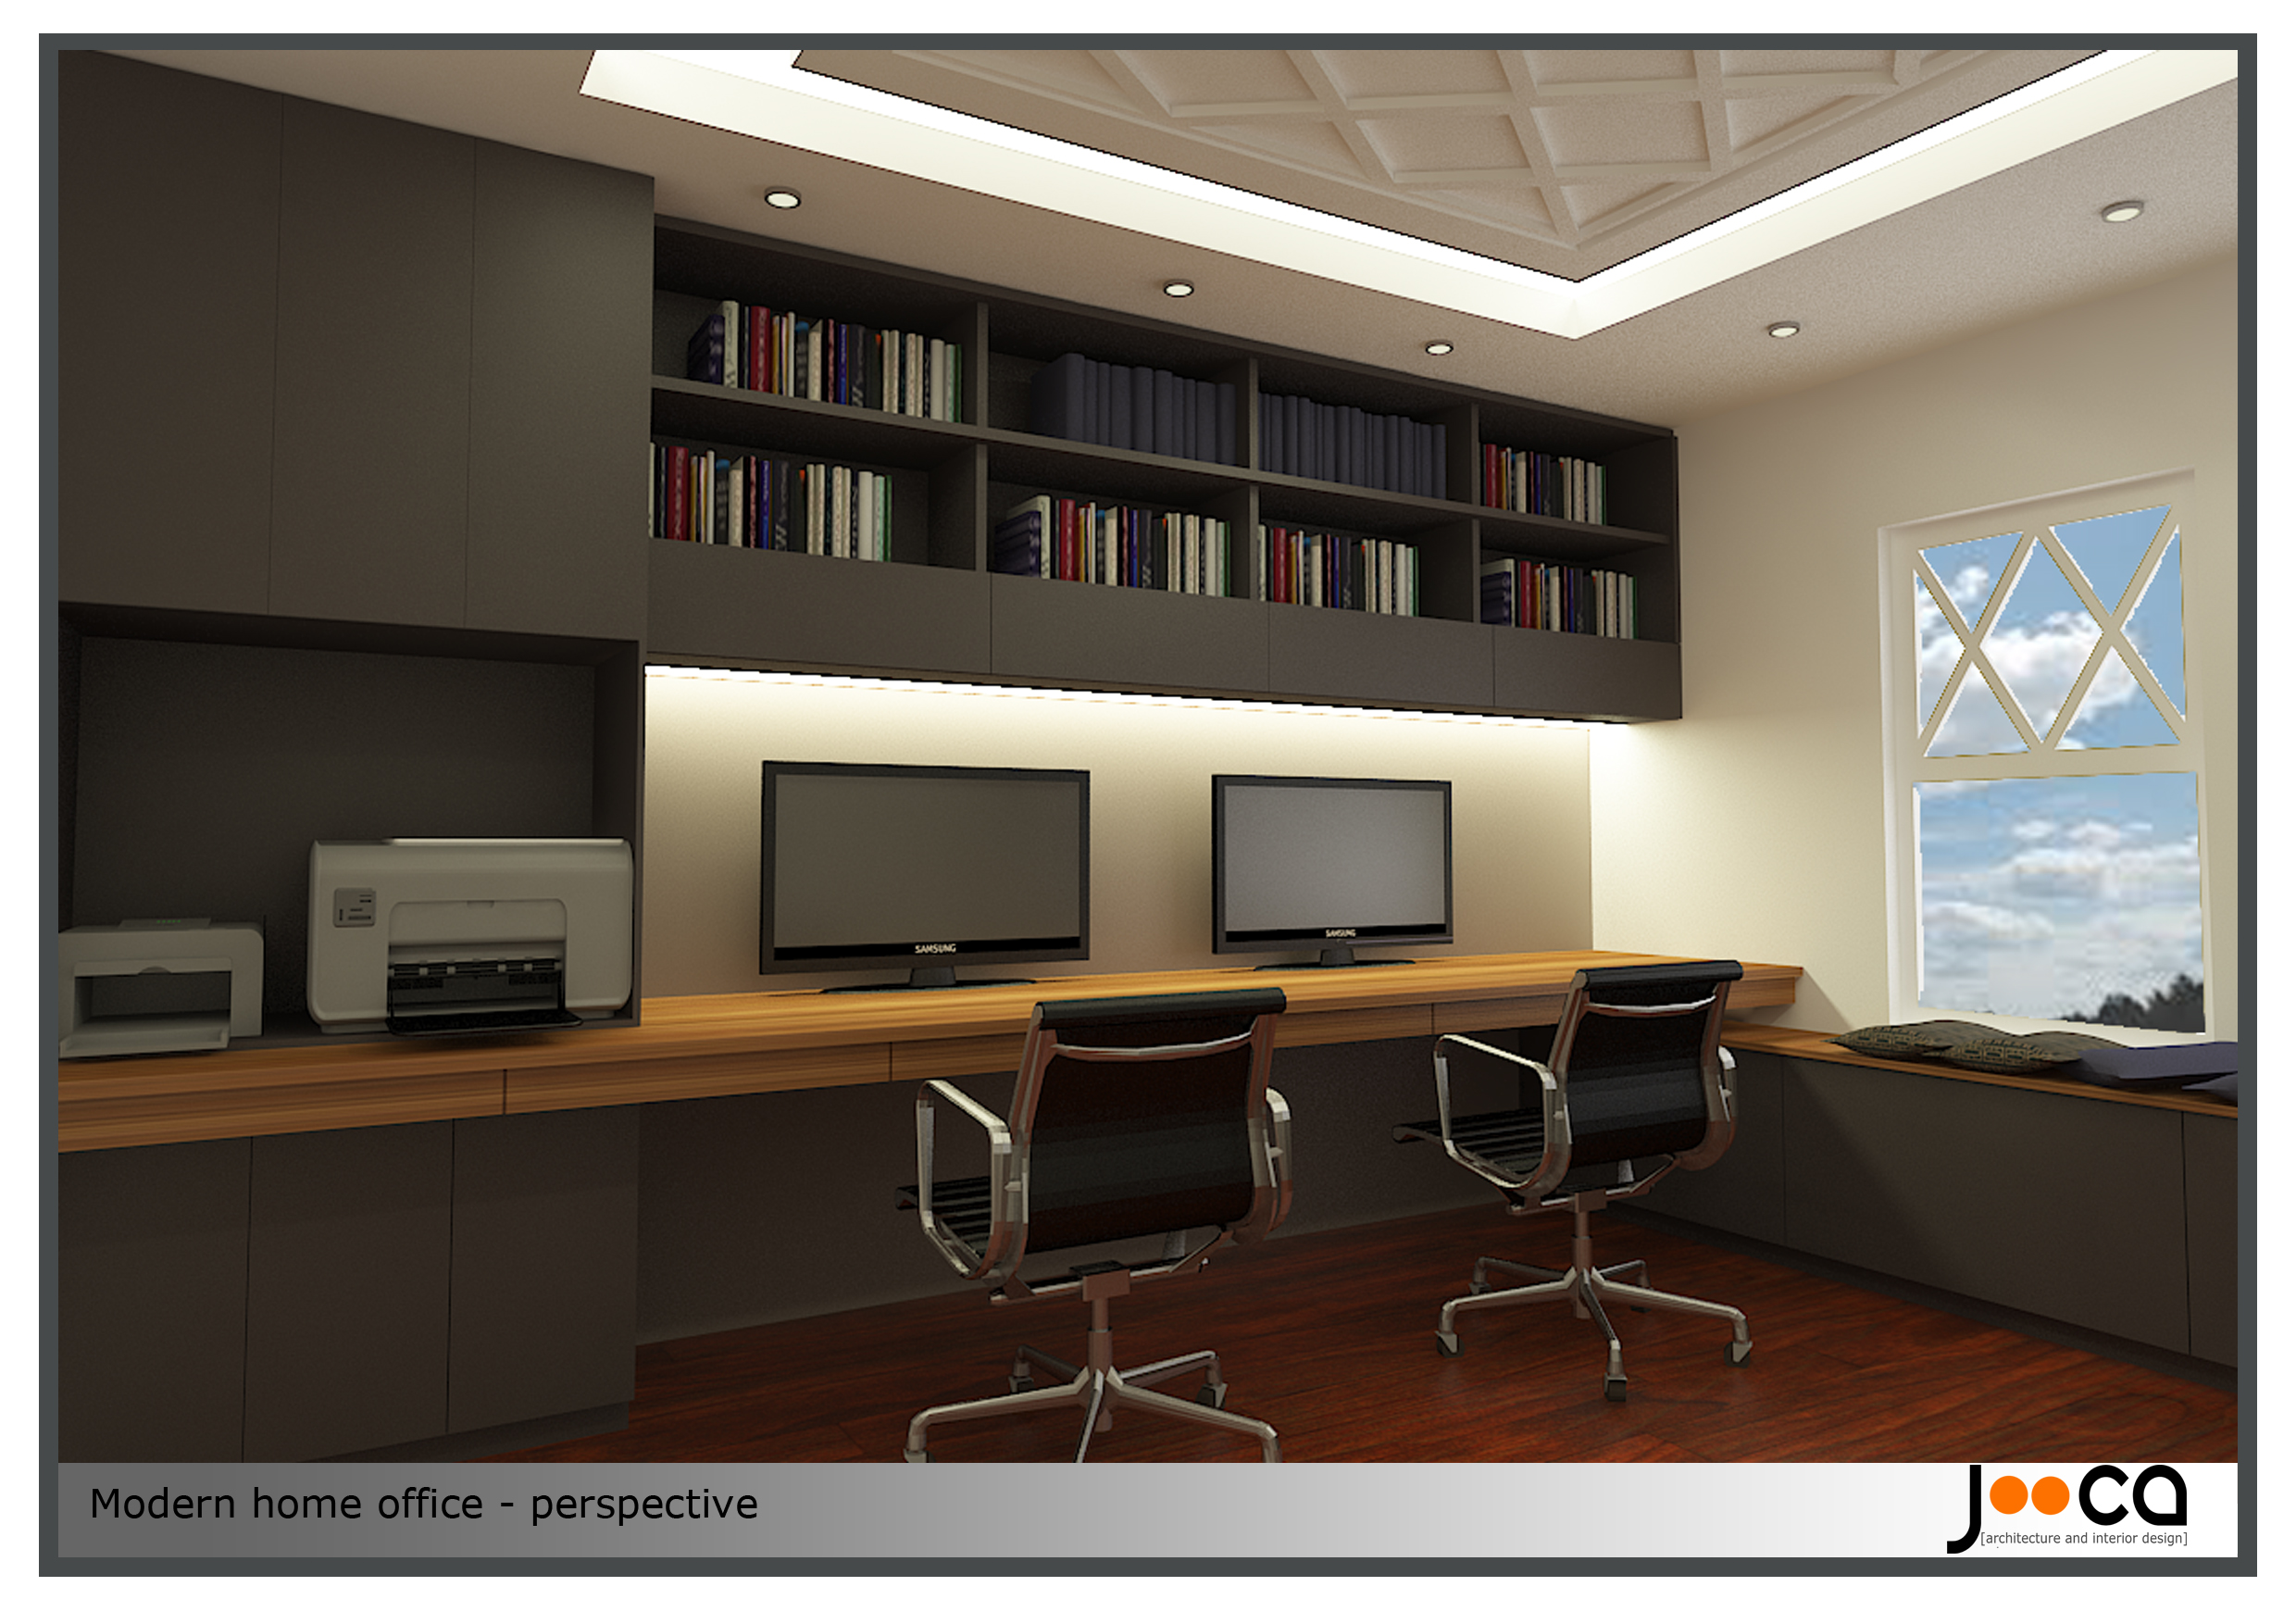 Top 70 Best Modern Home Office Design Ideas: ViewDesignerProject ProjectHome Office